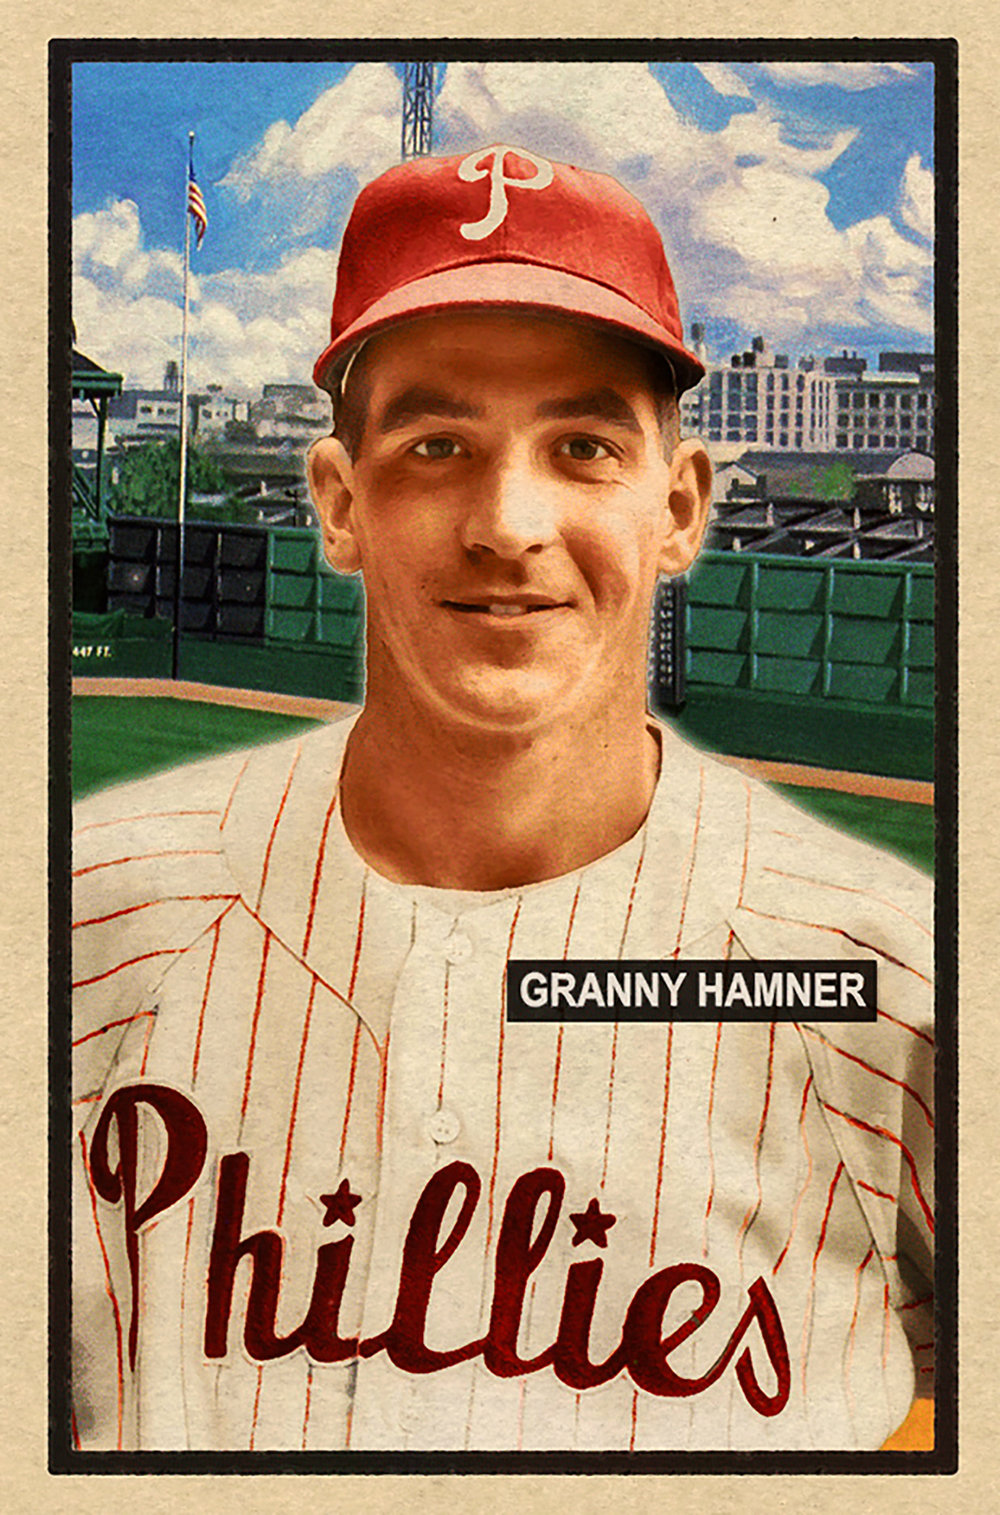 1951 Series #86 GRANNY HAMNER - Popular Phils infielder and '51 Series low population with beautiful Shibe Park backdrop. One of 2017's prettiest cards.SOLD FOR 125.35 USD, December 2017